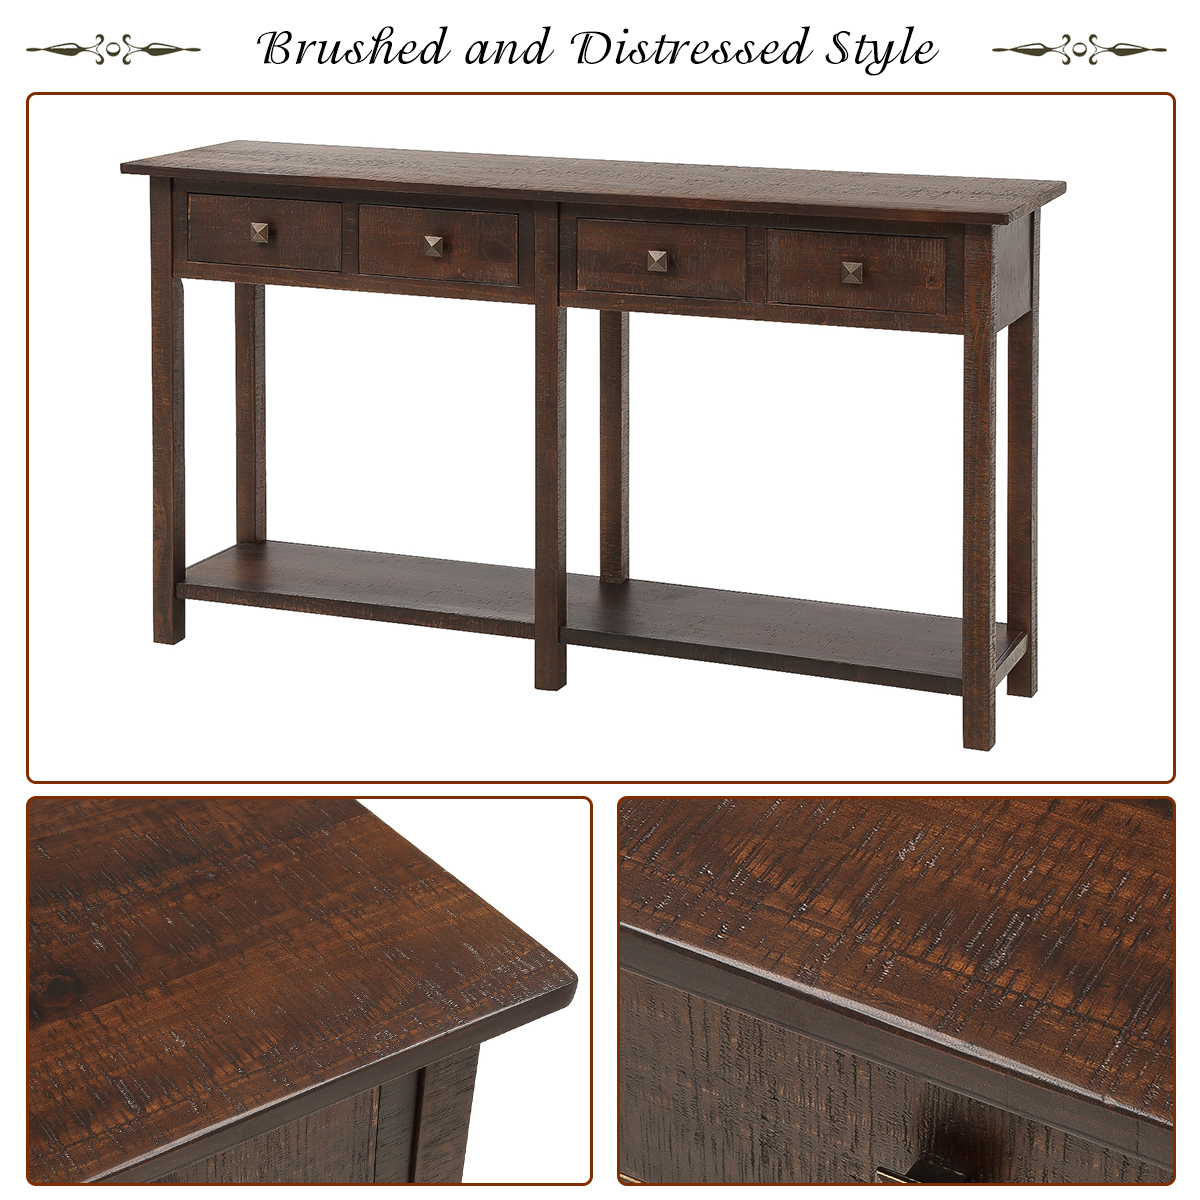 59 X 15 X 33 Tall Console Table With 4 Storage Drawers Wood Buffet Cabinet Sideboard Desk With Bottom Shelf Retro Tall Console Table Accent Table For Entryway 99lbs Espresso S9866